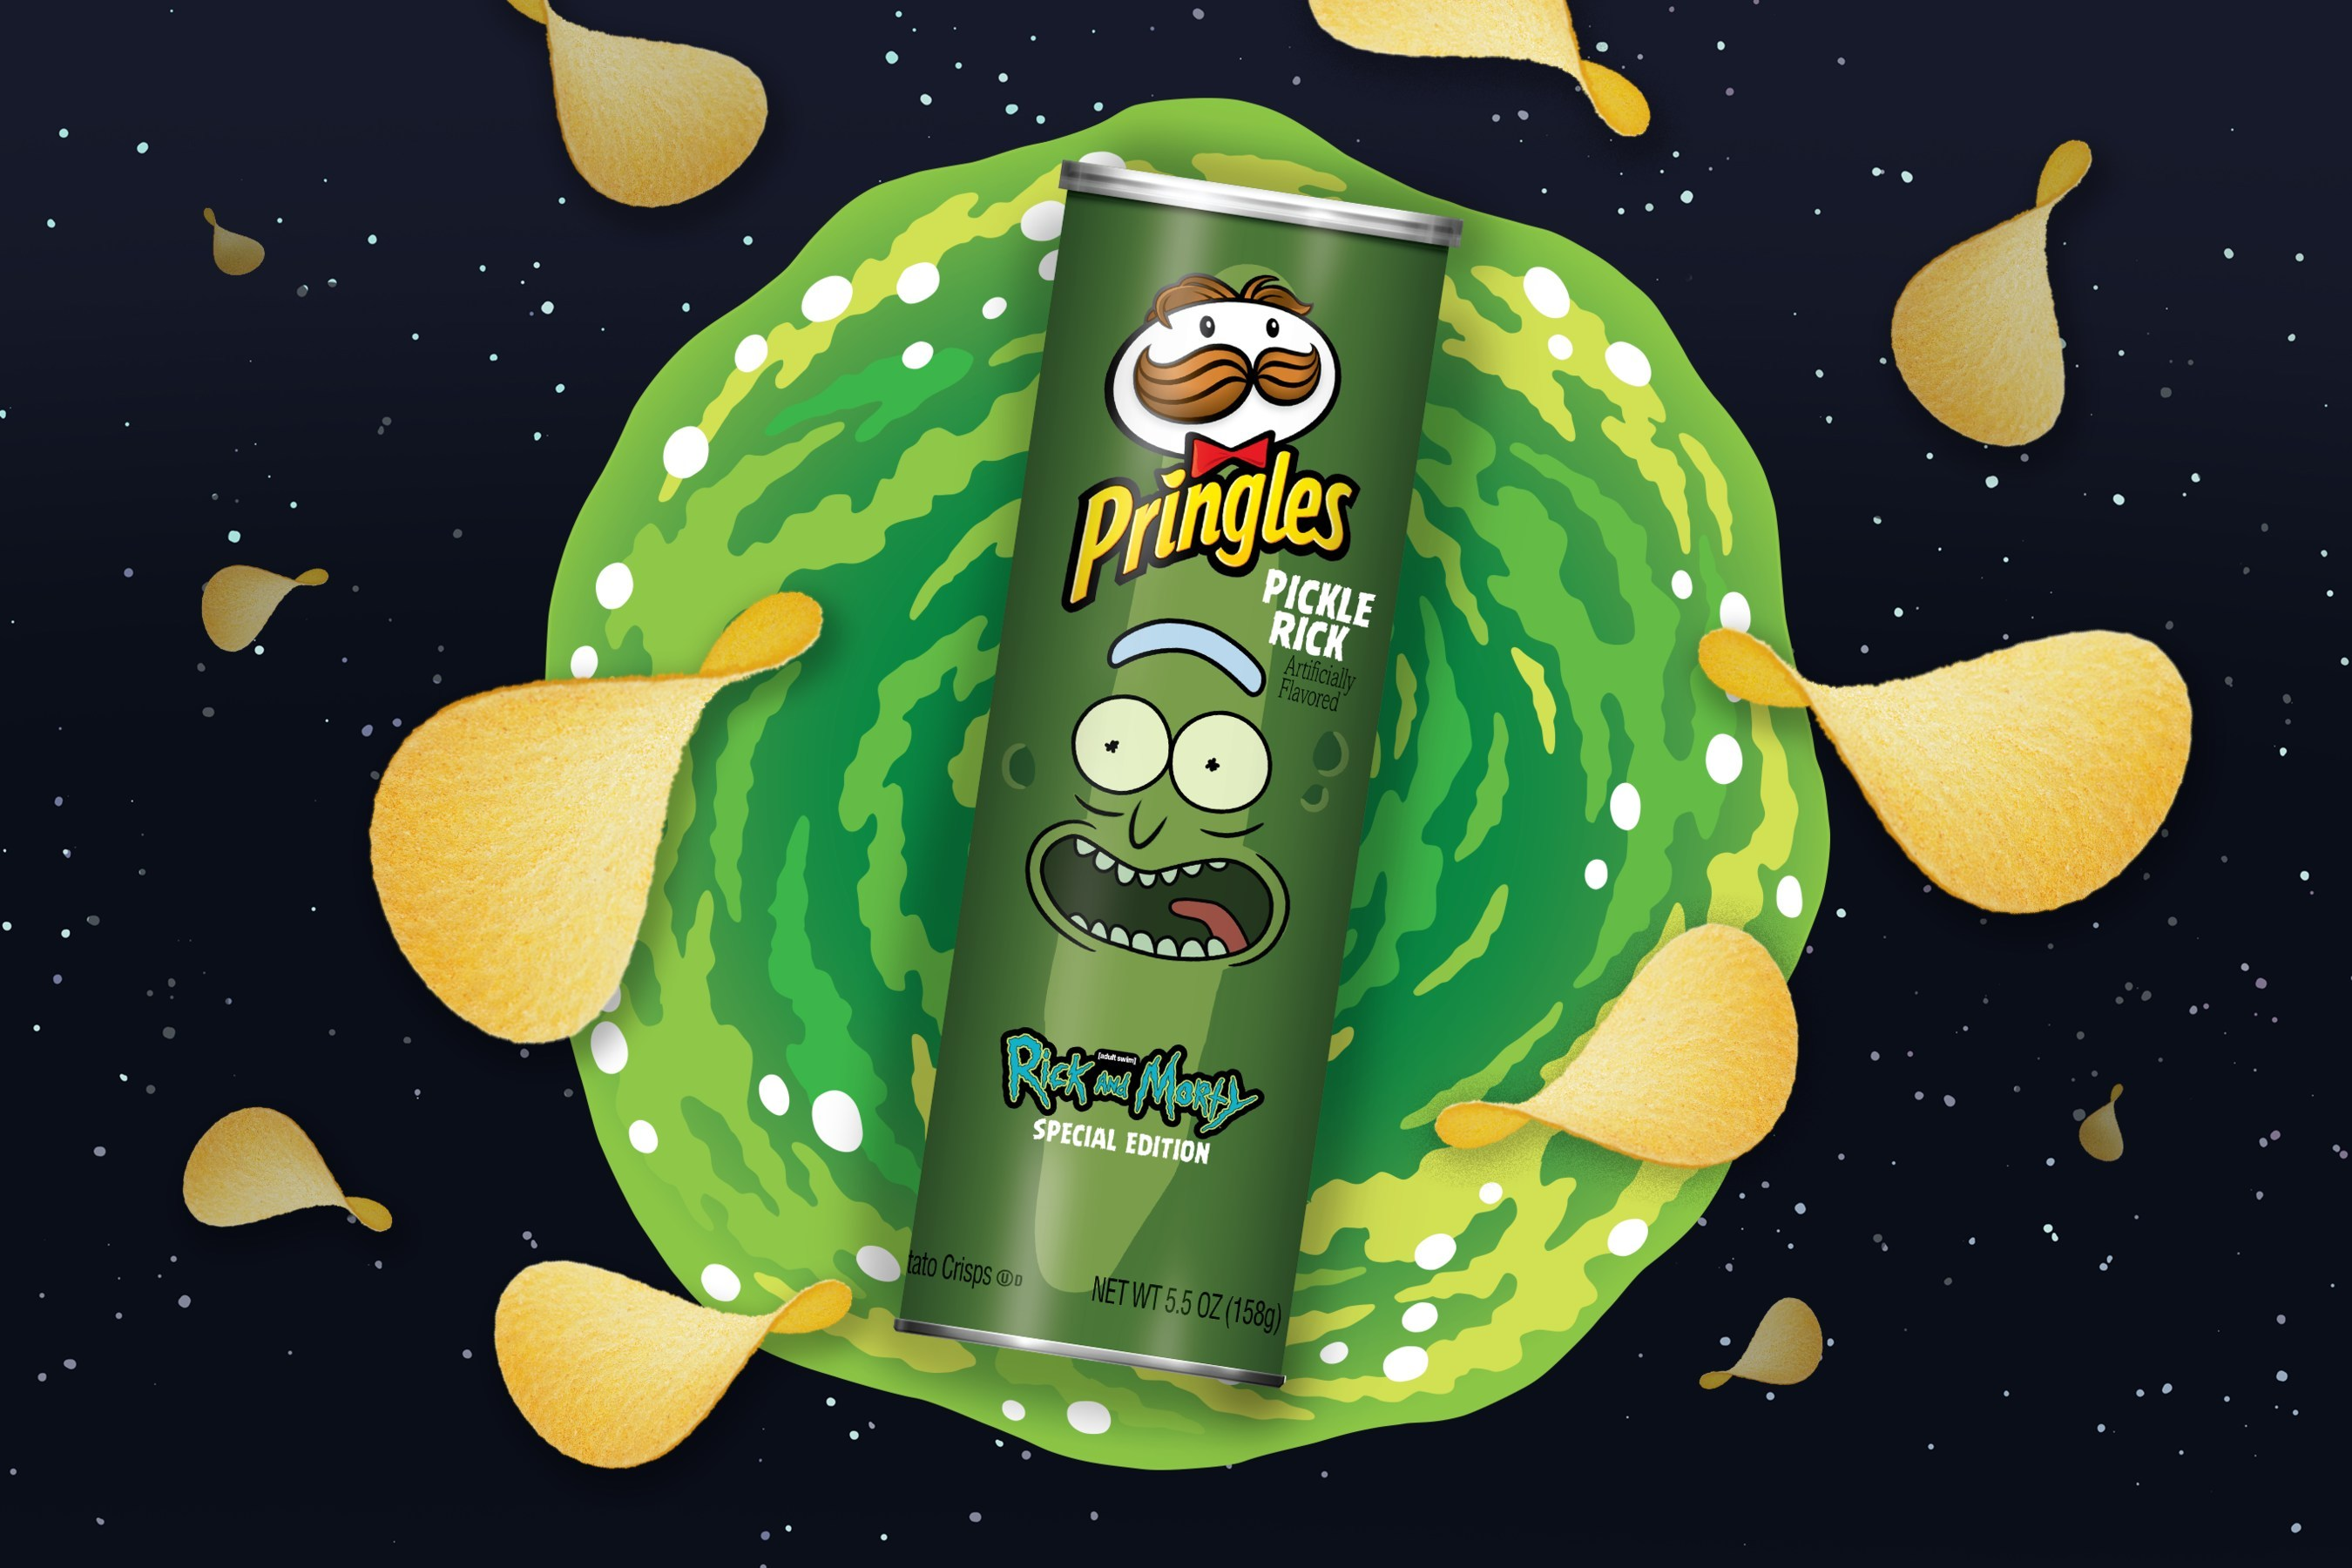 Pringles Is Making A Pickle Rick Flavor